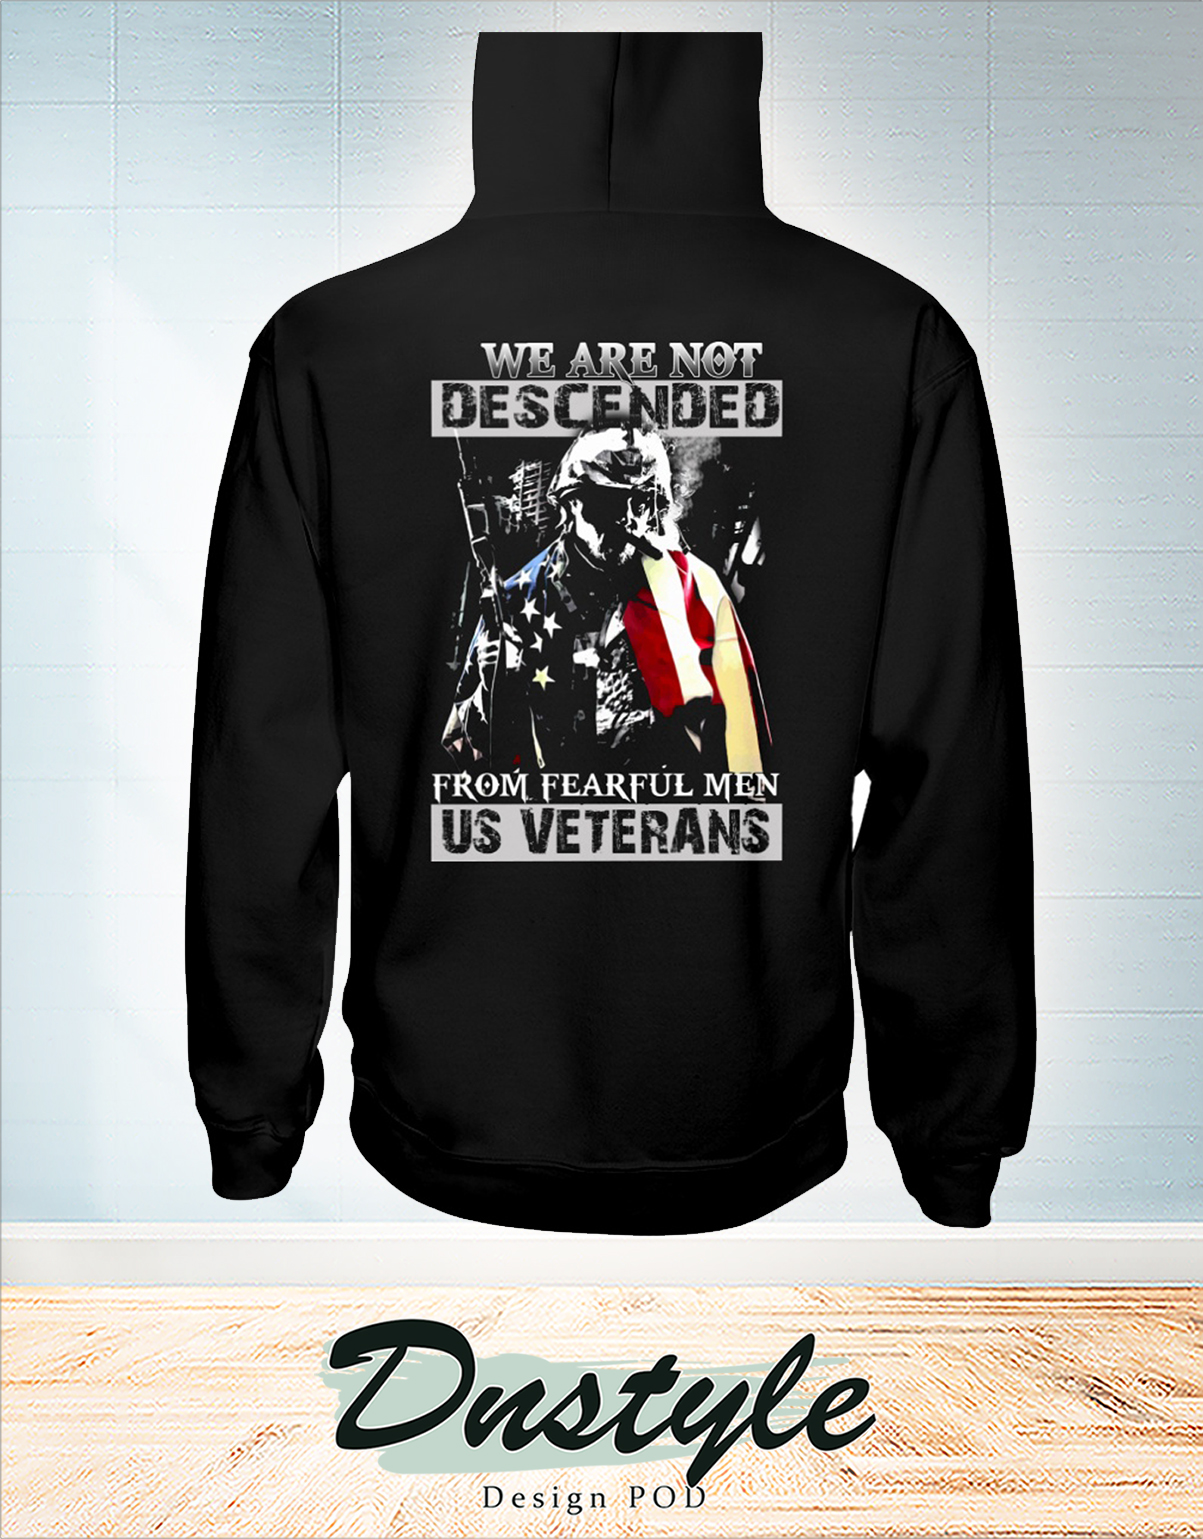 We are not descended from fearful men US veterans hoodie